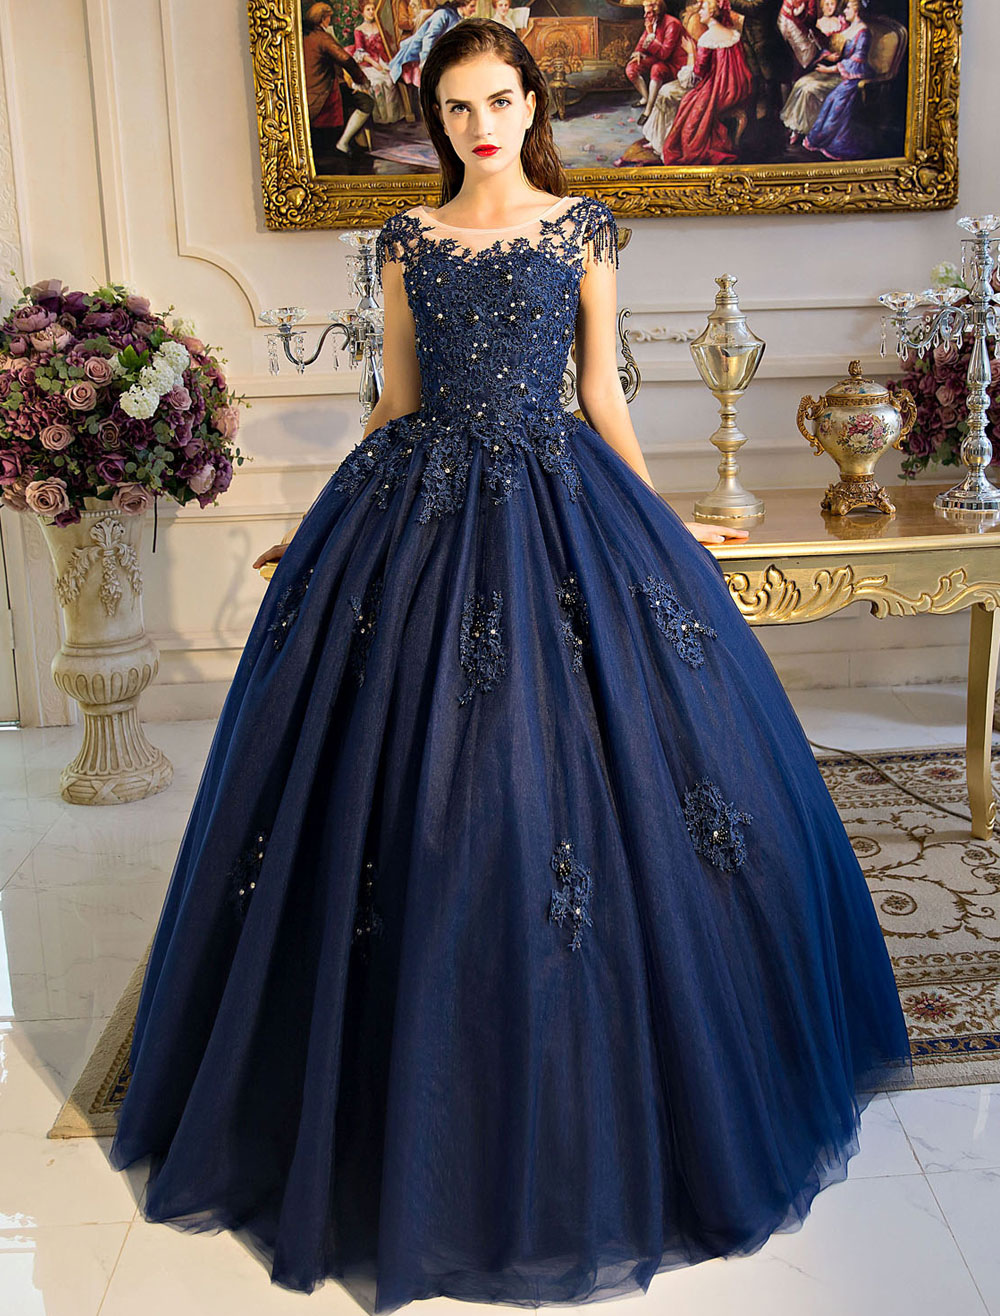 Buy Princess Quinceanera Dresses Luxury Dark Navy Lace Applique Beaded Keyhole Floor Length Women's Pageant Dress for $229.49 in Milanoo store